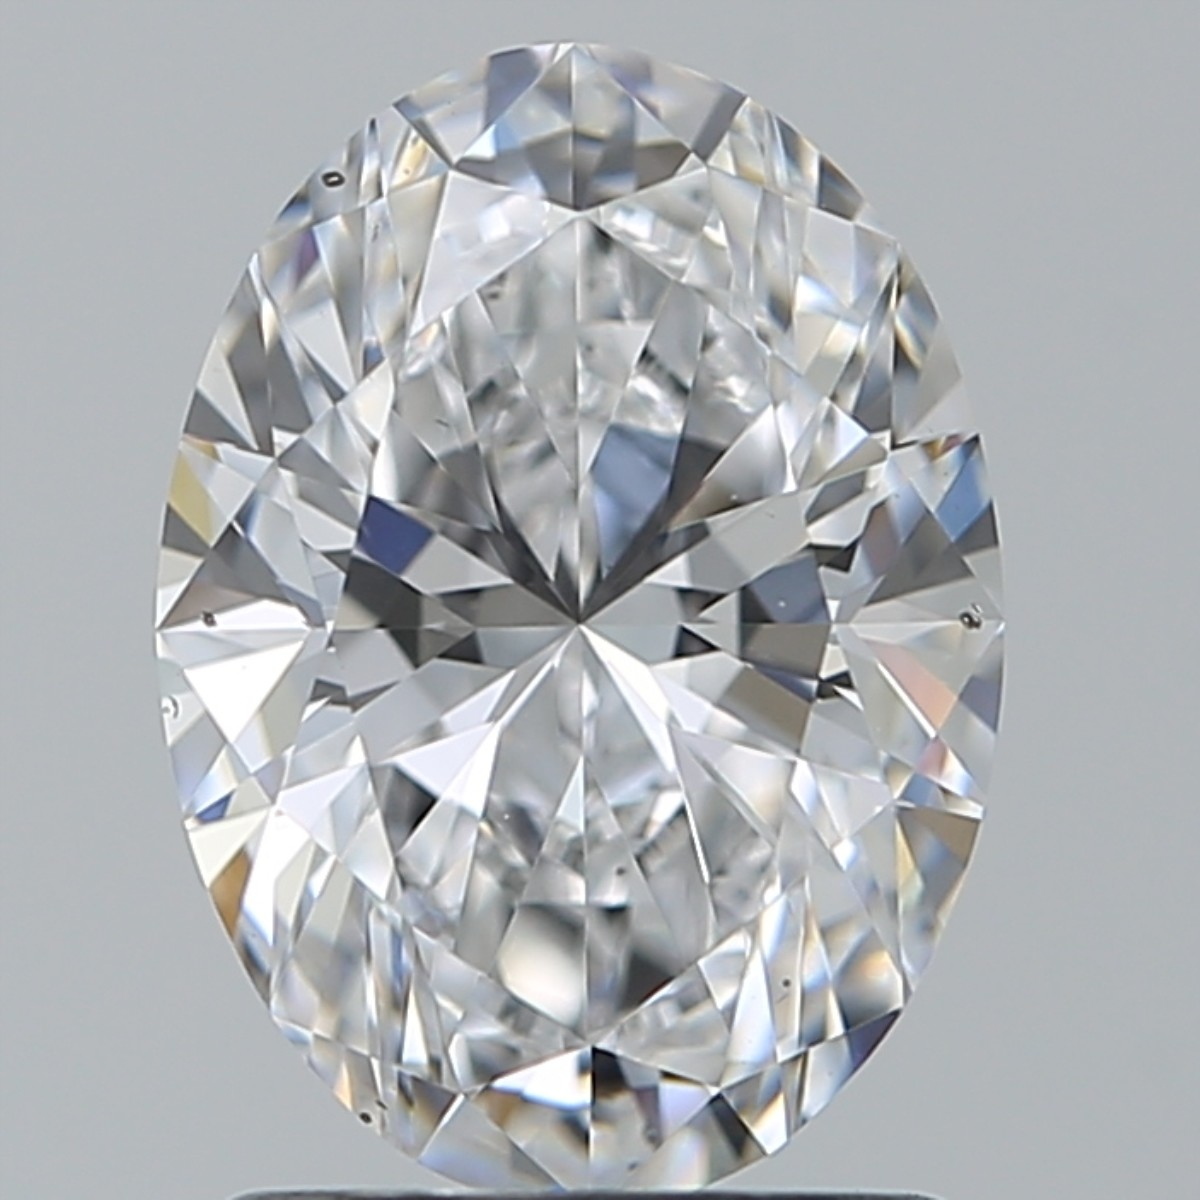 1.52 Carat Oval Diamond (D/VS2)